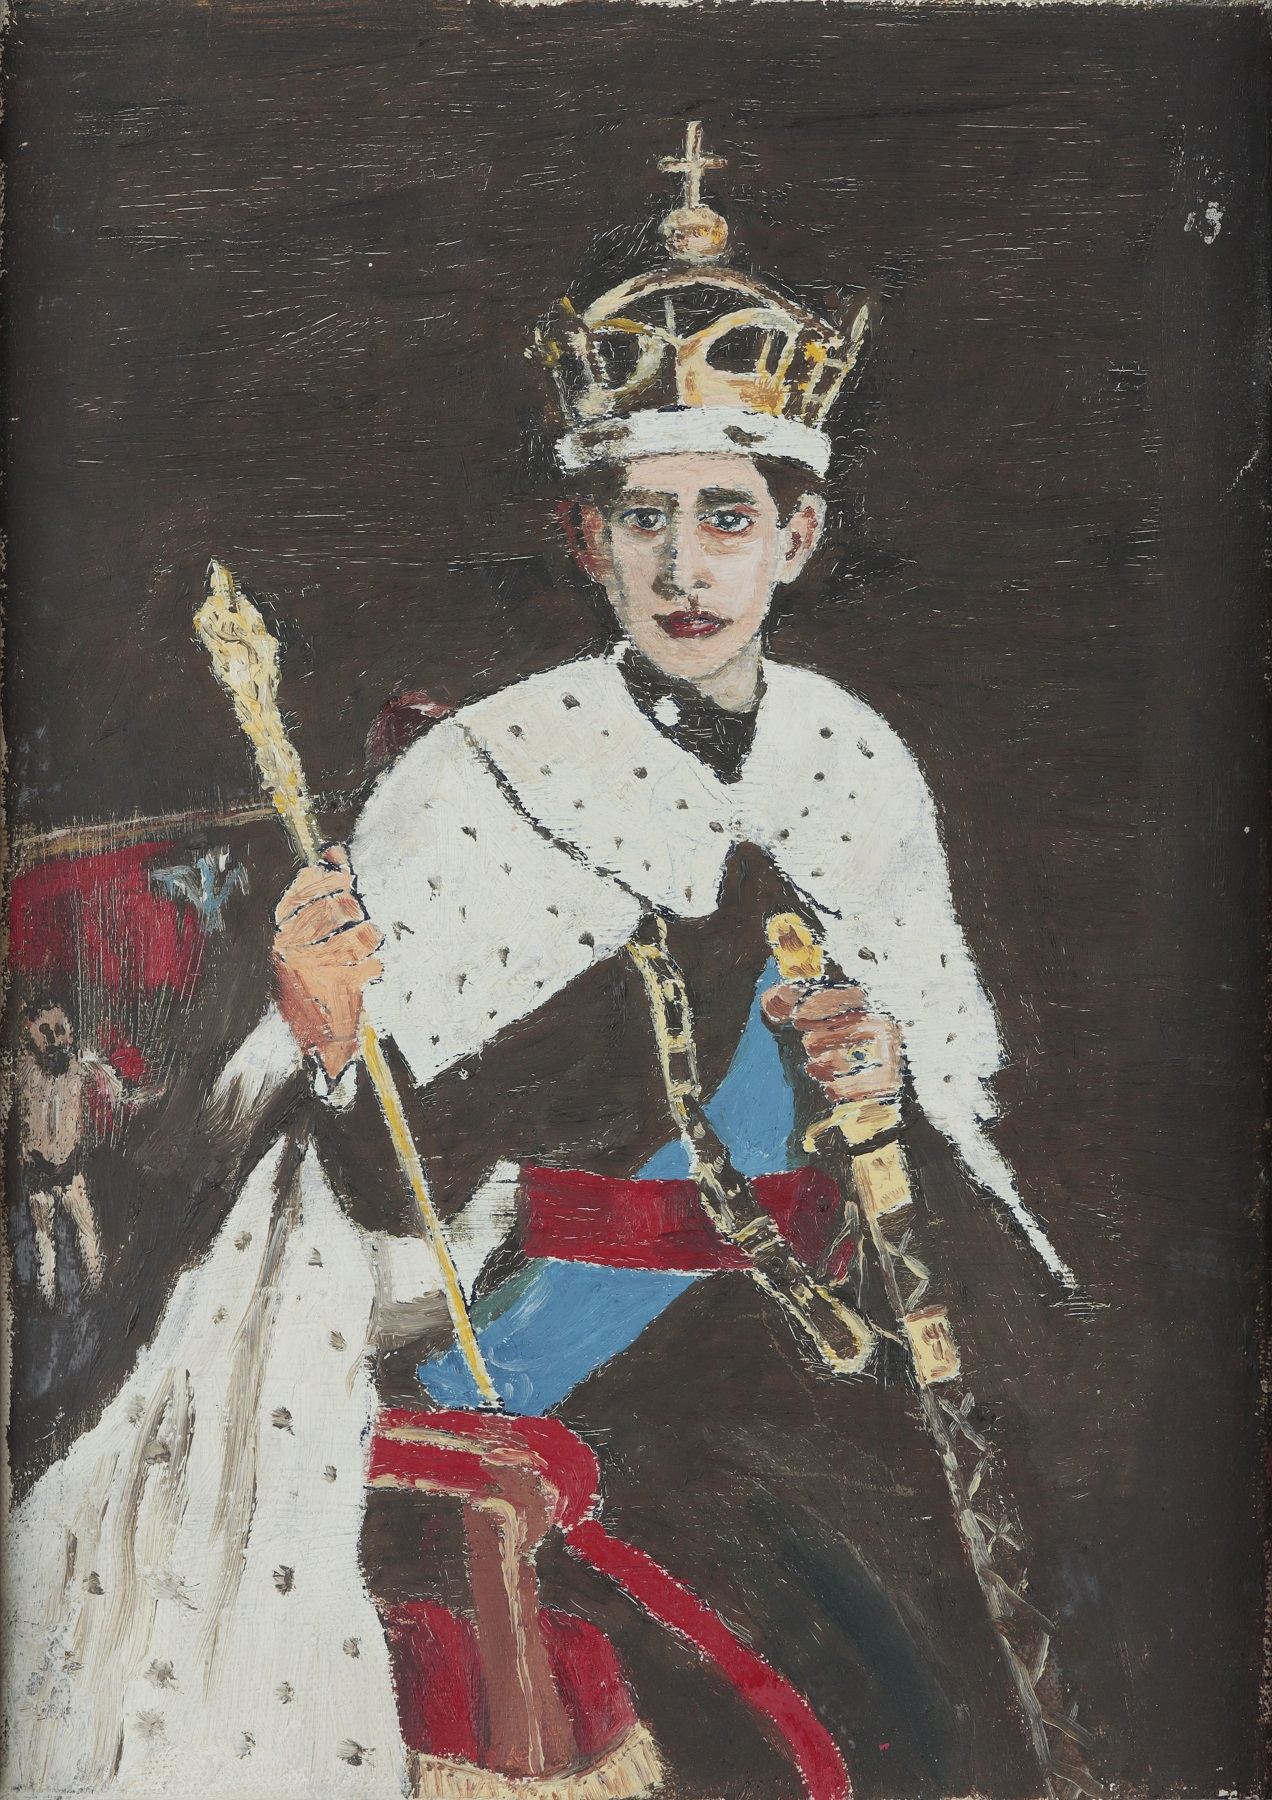 Oil on Canvas portrait of Charles, Prince of Wales, painted c. mid-20th Century.